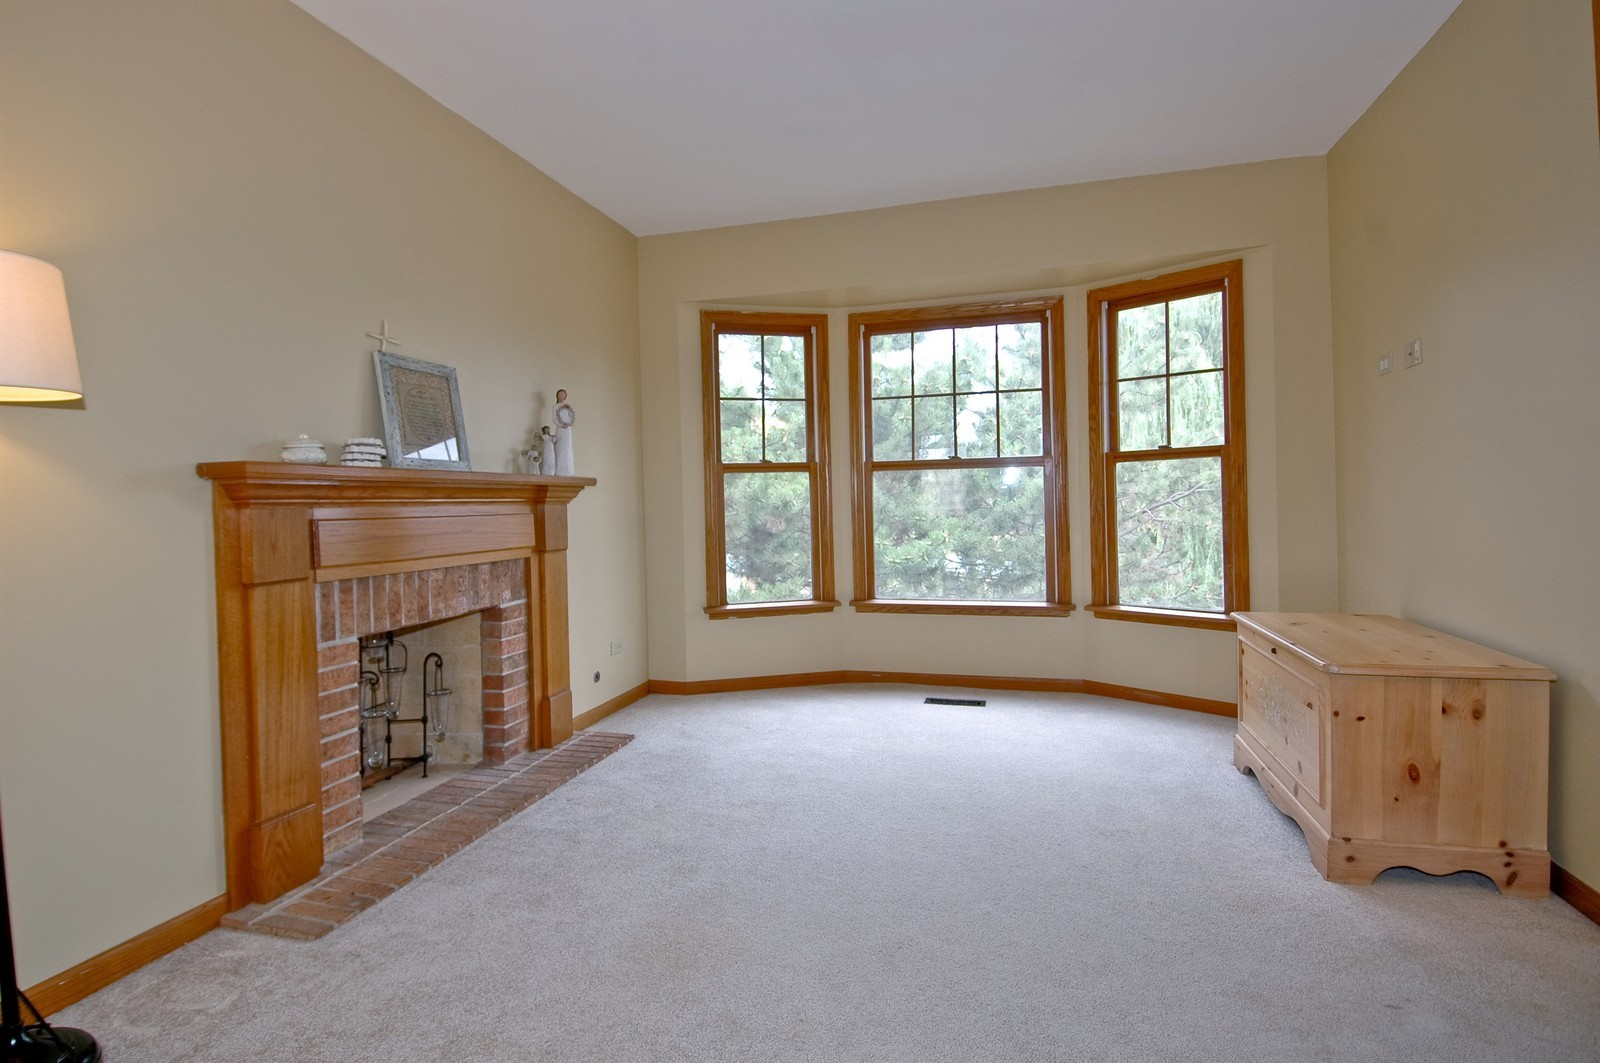 Real Estate Photography - 3500 Persimmon Dr, Algonquin, IL, 60102 - Location 1